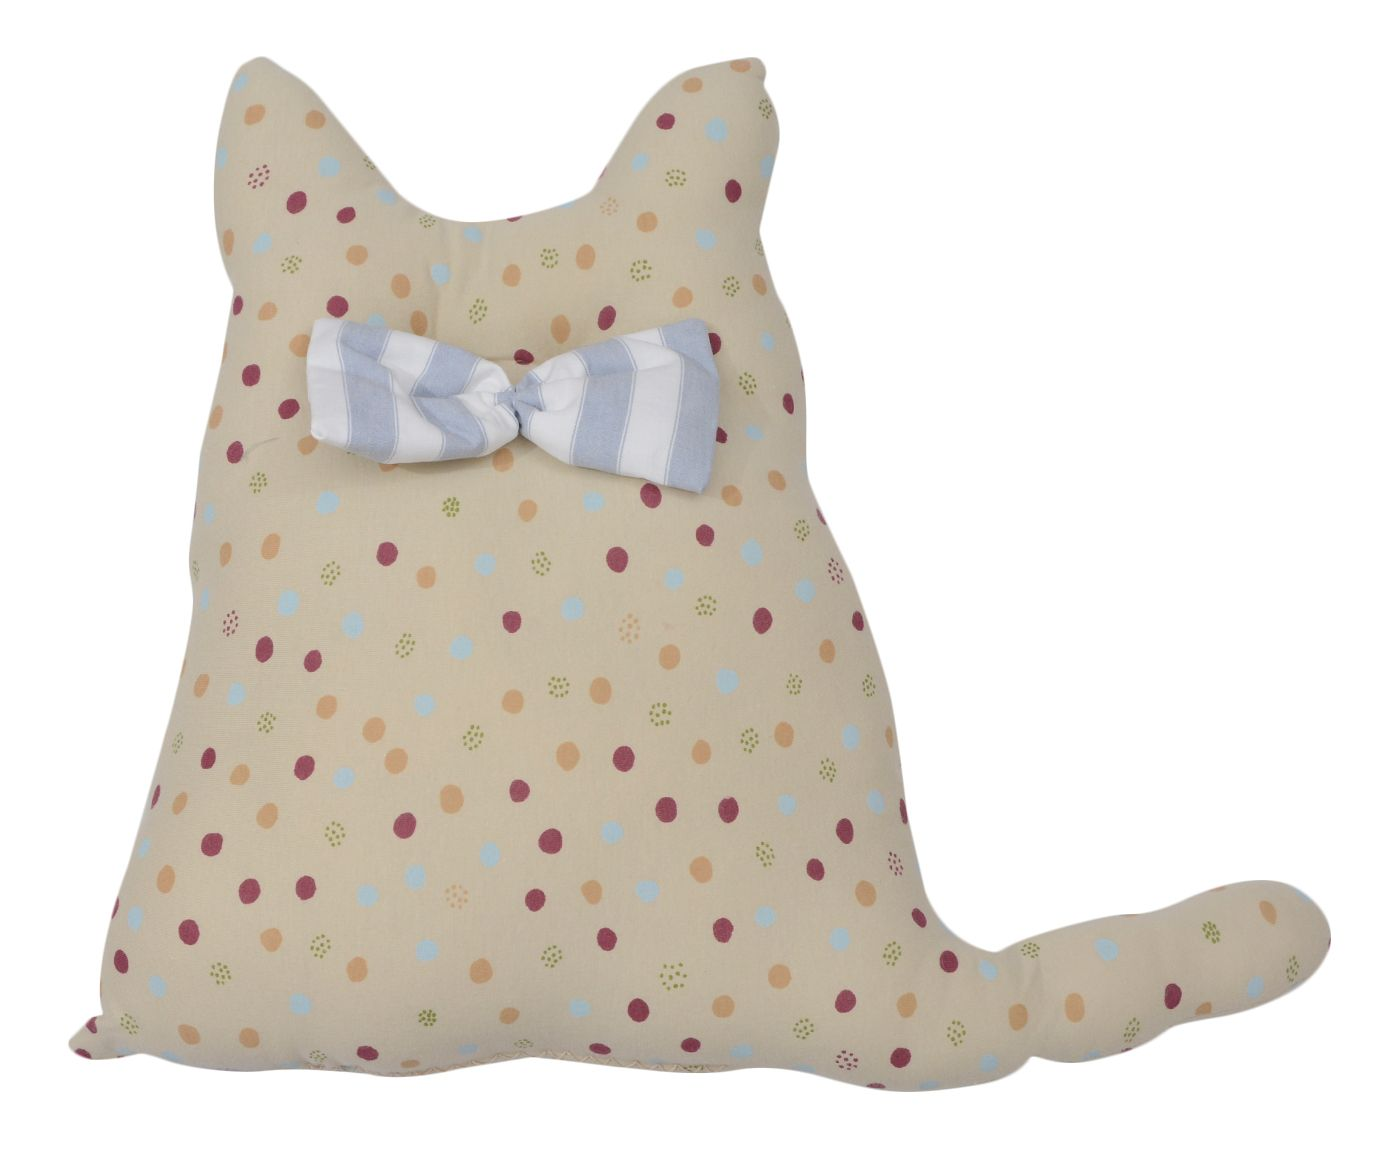 Almofada Cat Points Bege - 50x40cm | Westwing.com.br